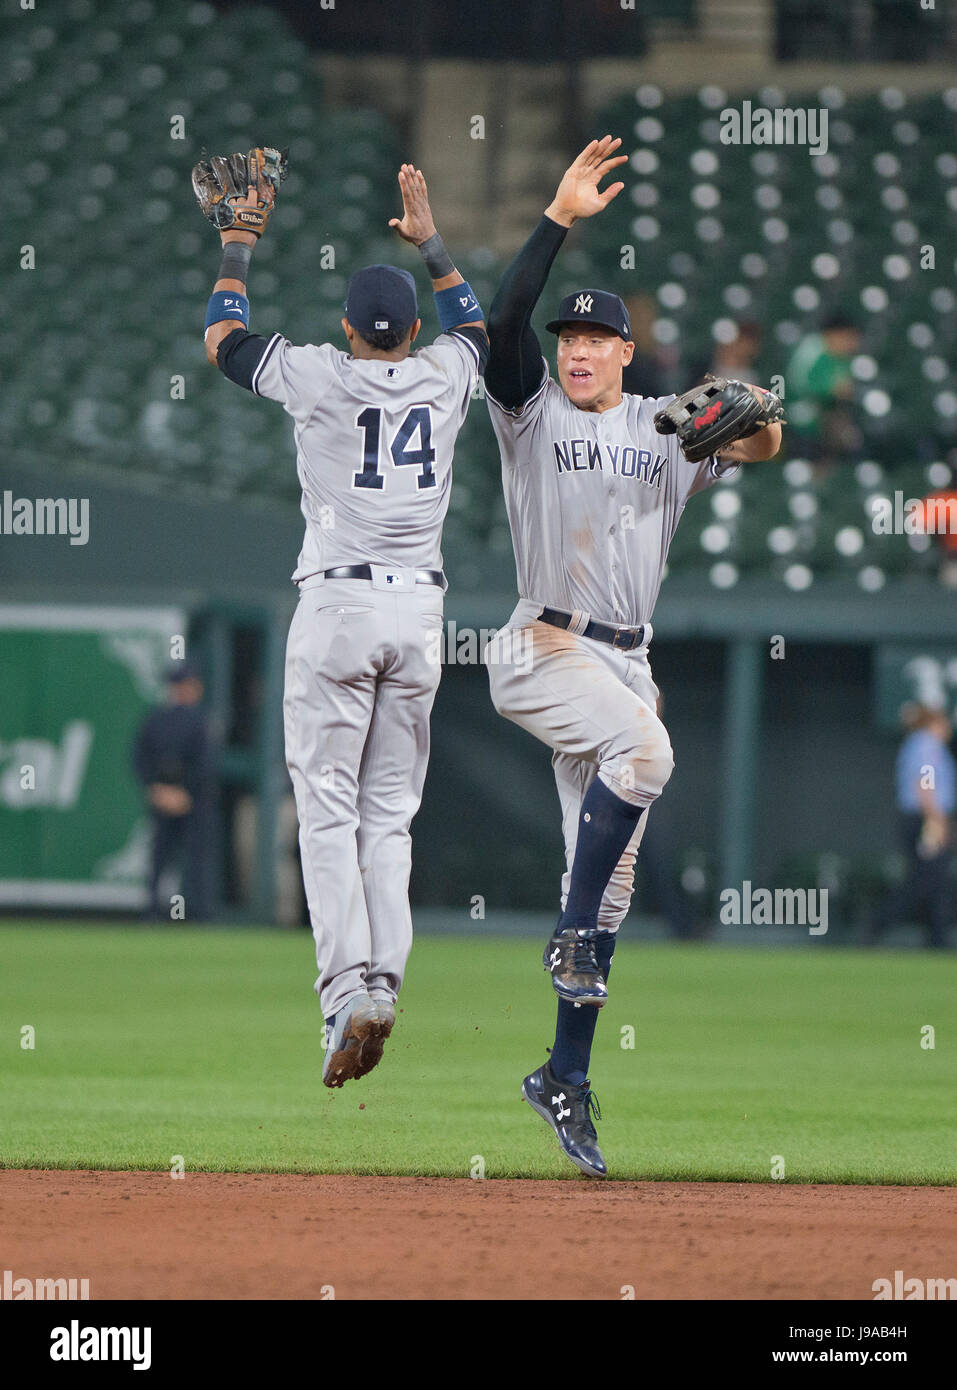 159ae95aa0b New York Yankees second baseman Starlin Castro (14) and right fielder Aaron  Judge (